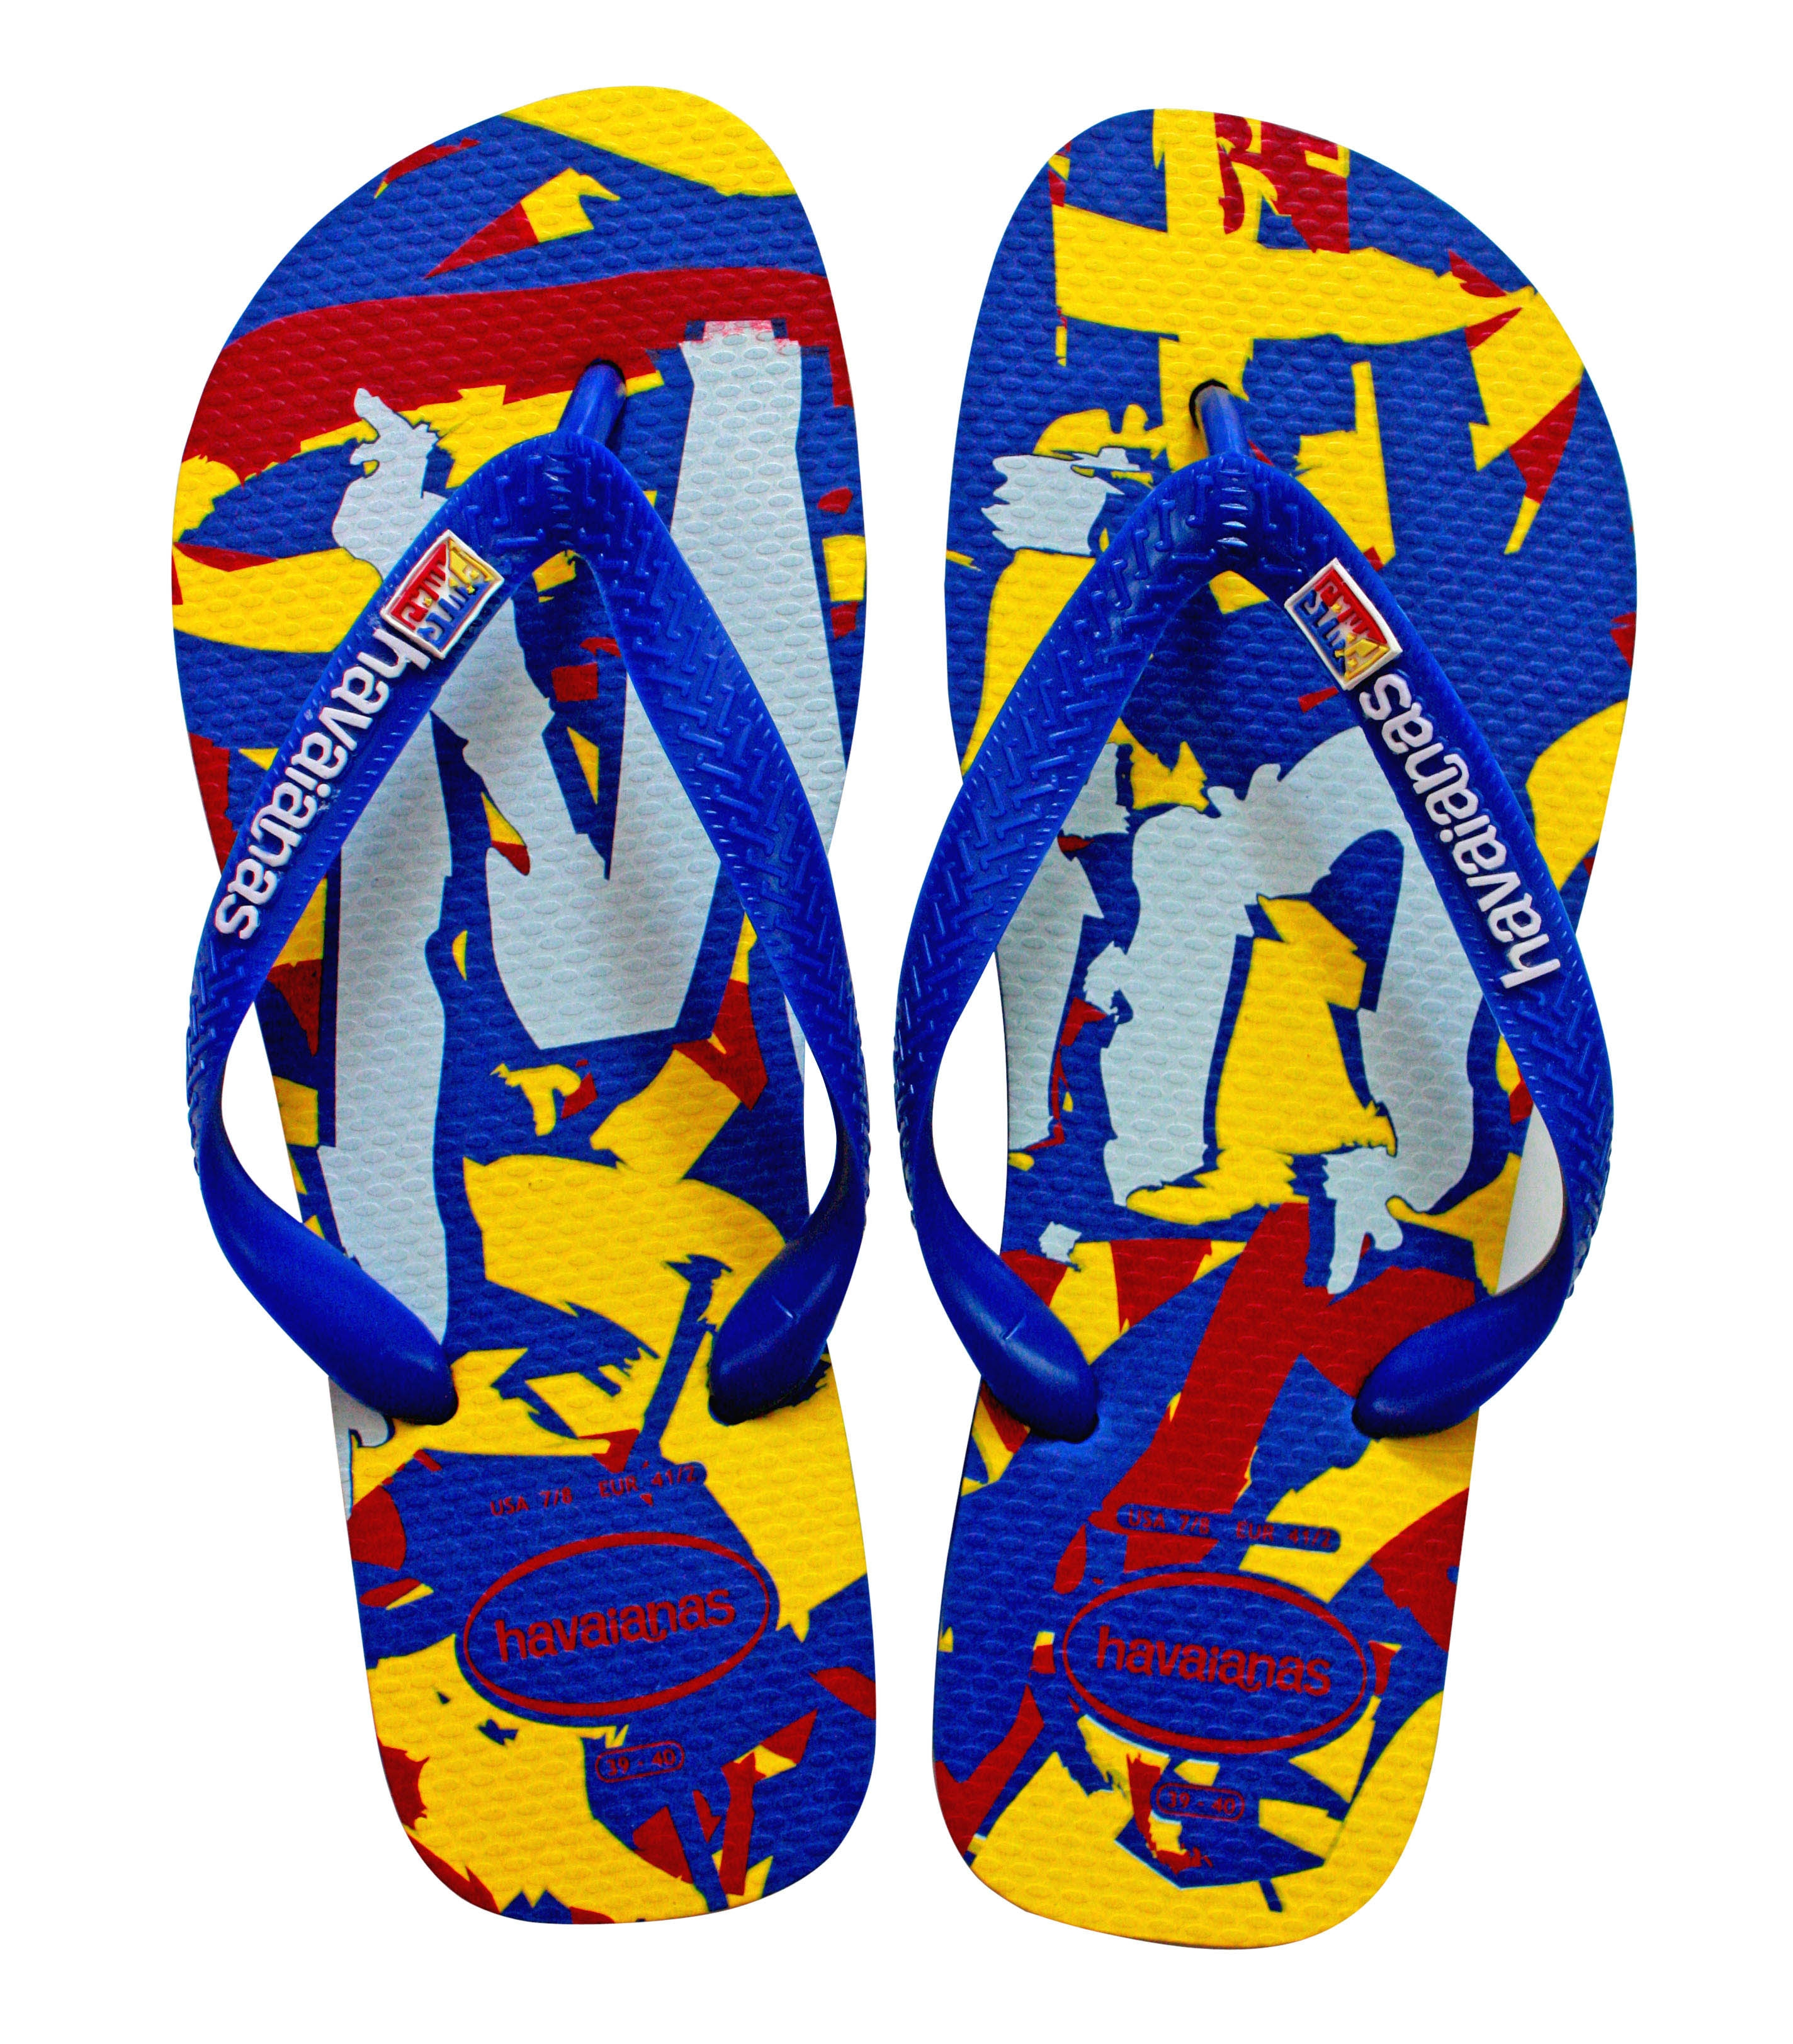 70ad9ce360bf Havaianas Filipinas 2011 Limited Edition now available in Valencia ...